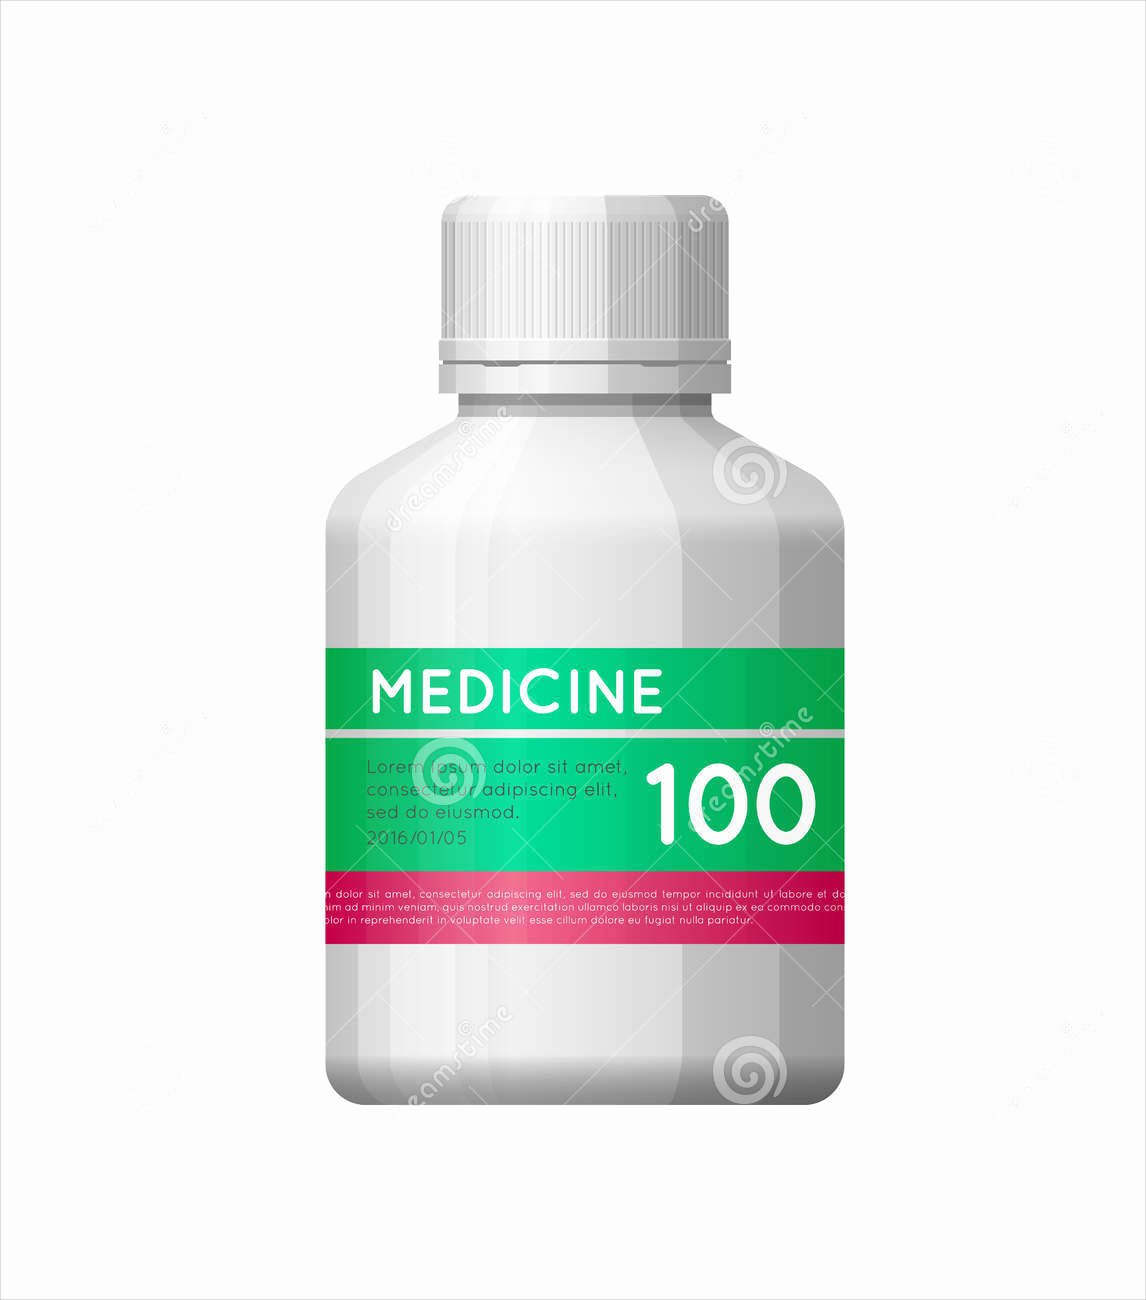 Medicine Bottle Label Template Fresh 53 Label Design Templates